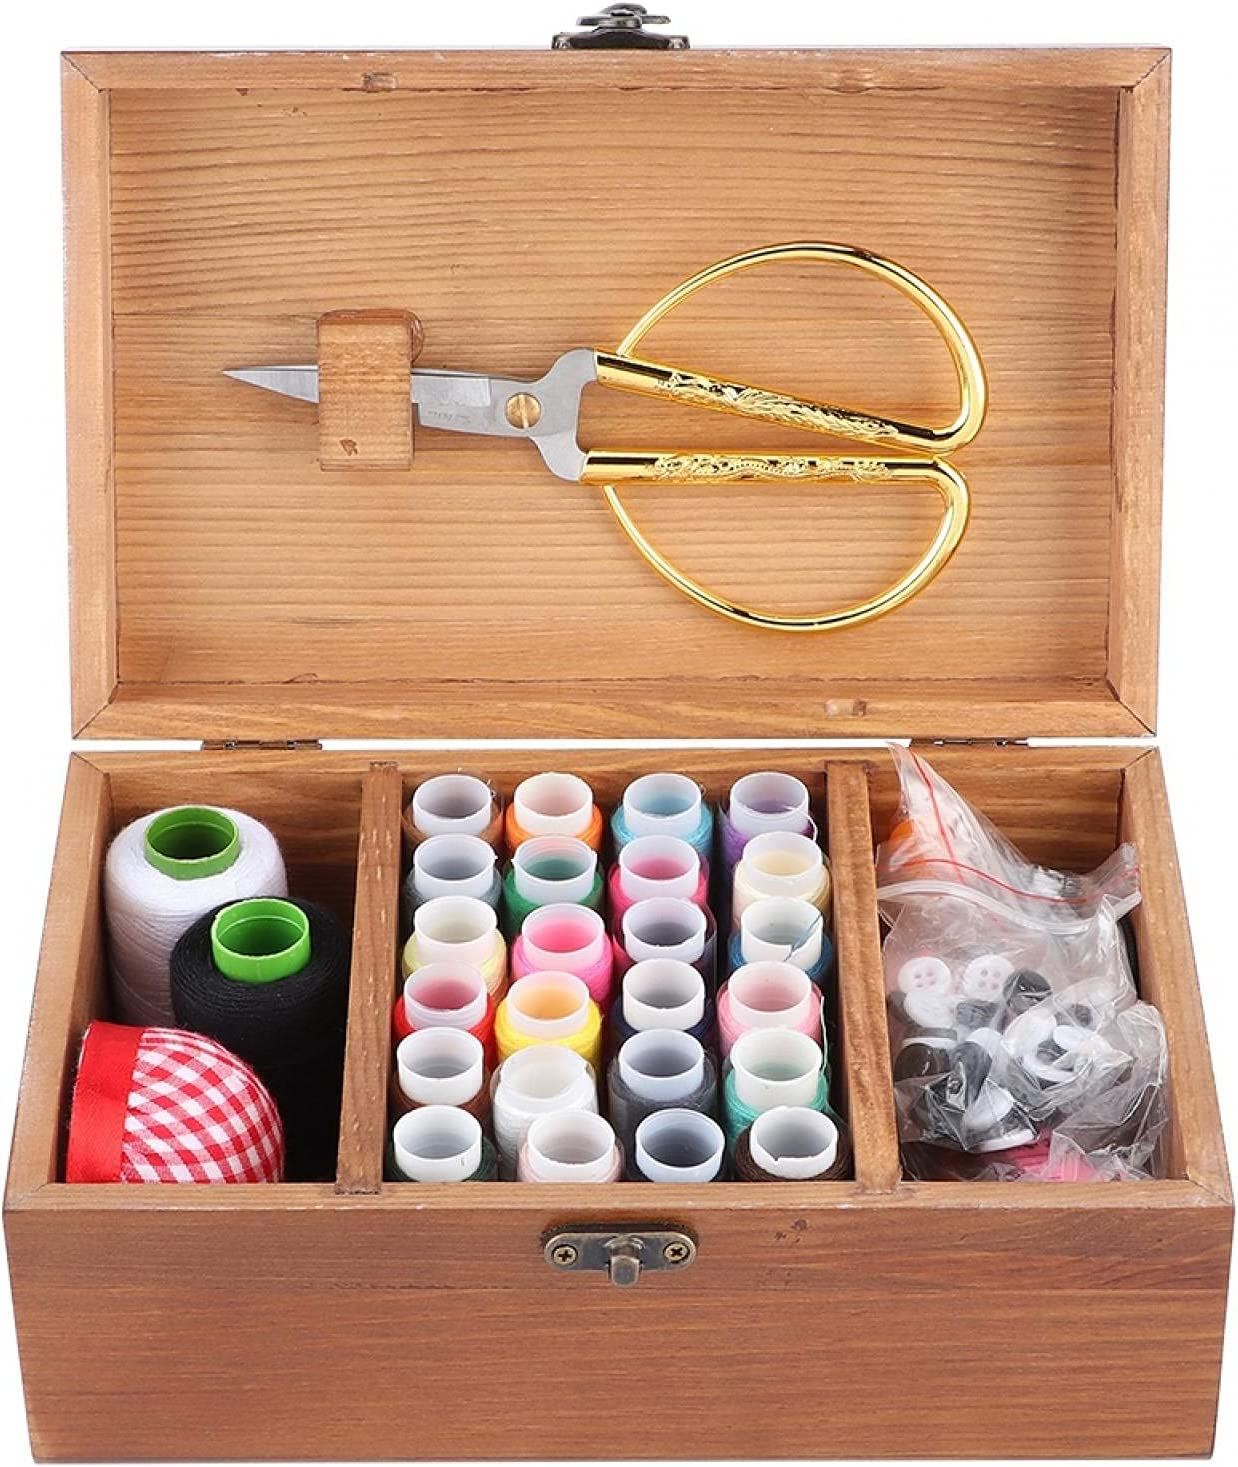 Sewing Box All stores are sold Household Vintage Ranking TOP3 Needle Wooden Thread St